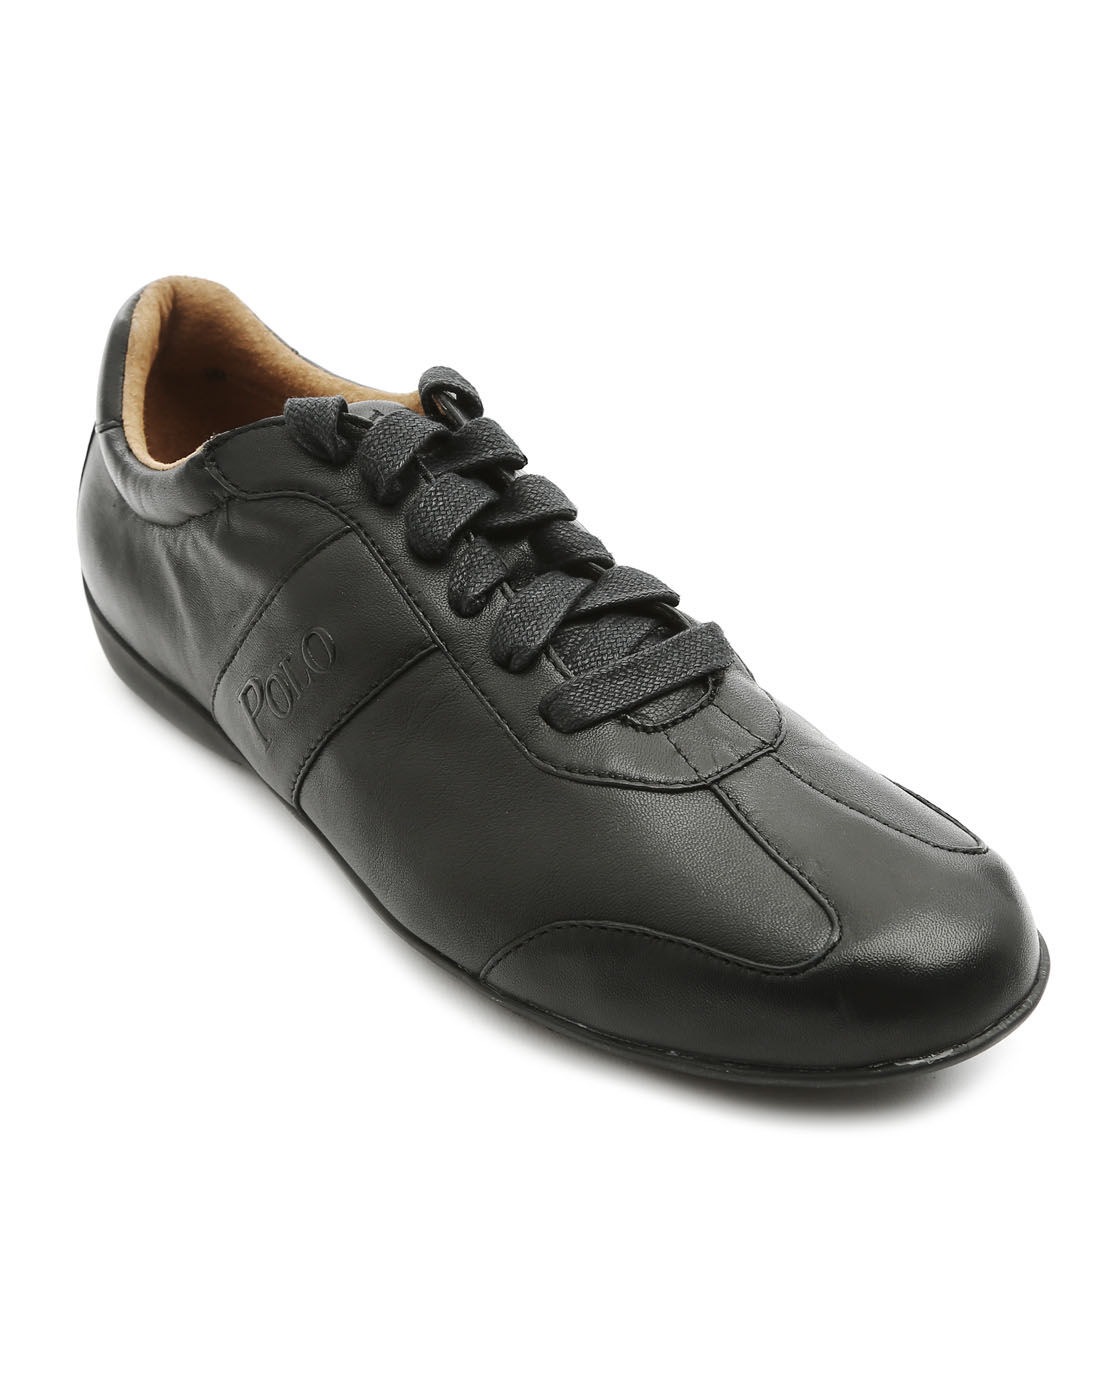 polo ralph lansil black leather shoes in black for